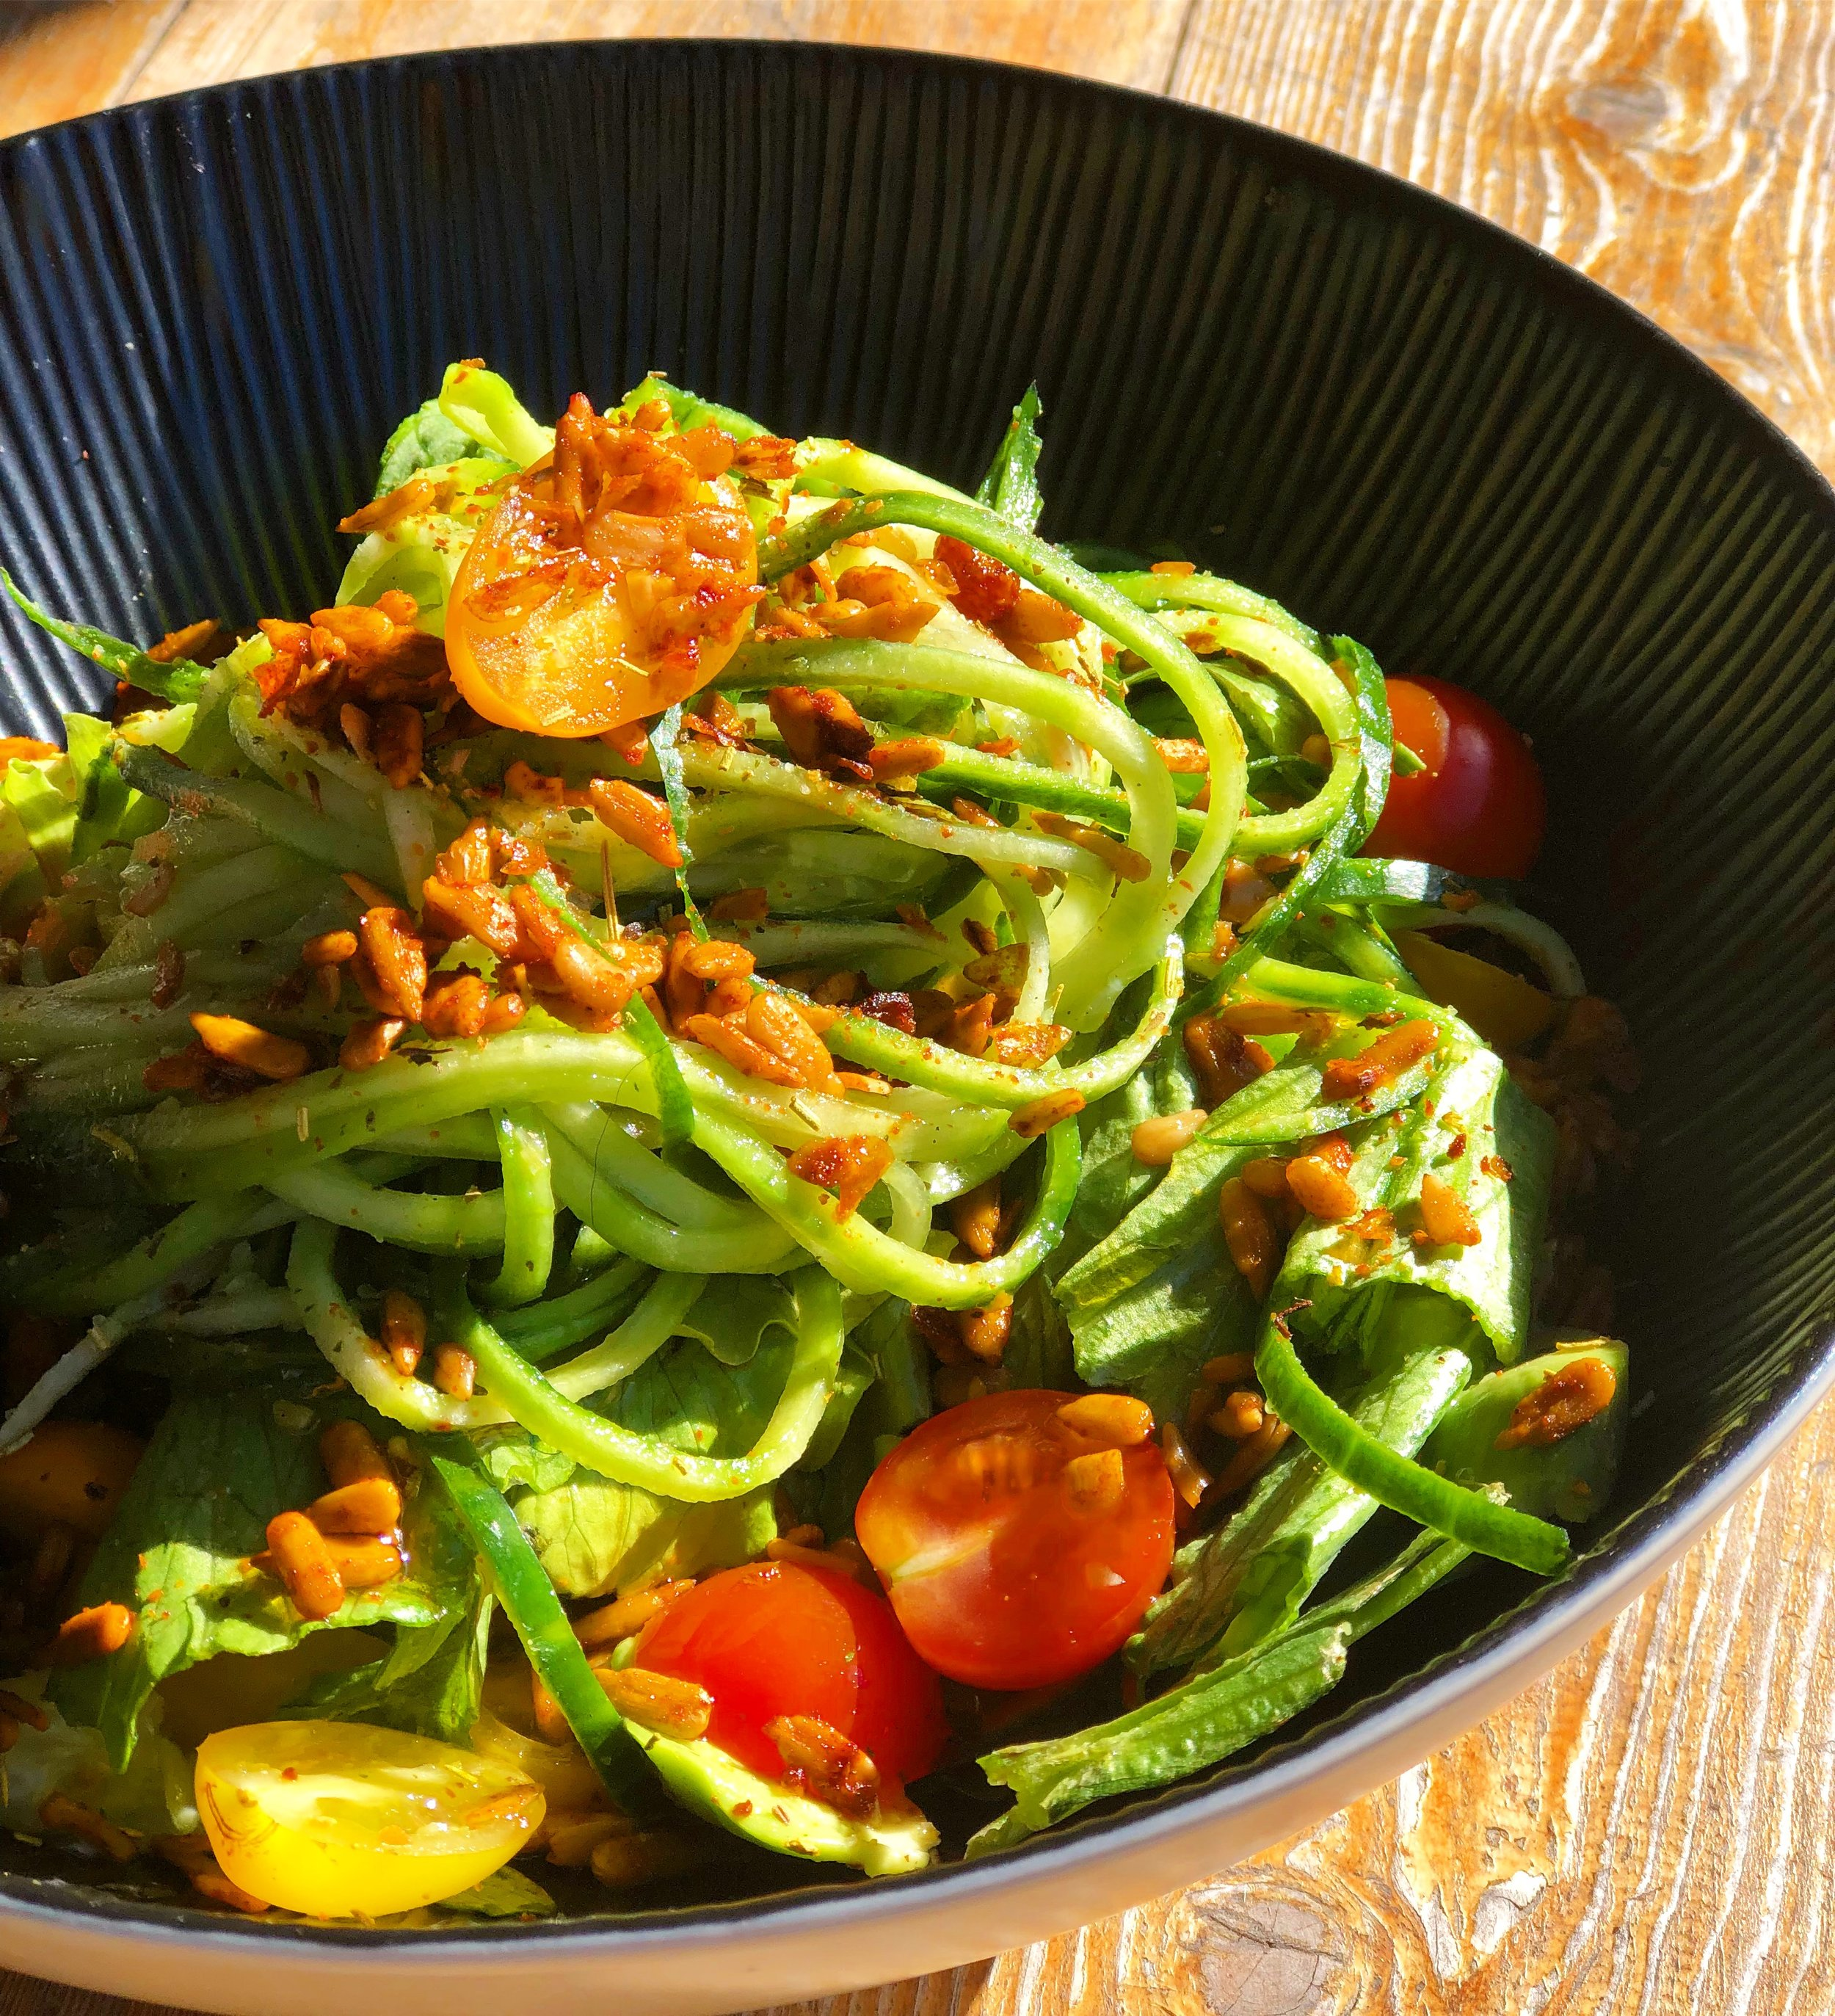 Cucumber Noodles are surprisingly filling and completely delicious